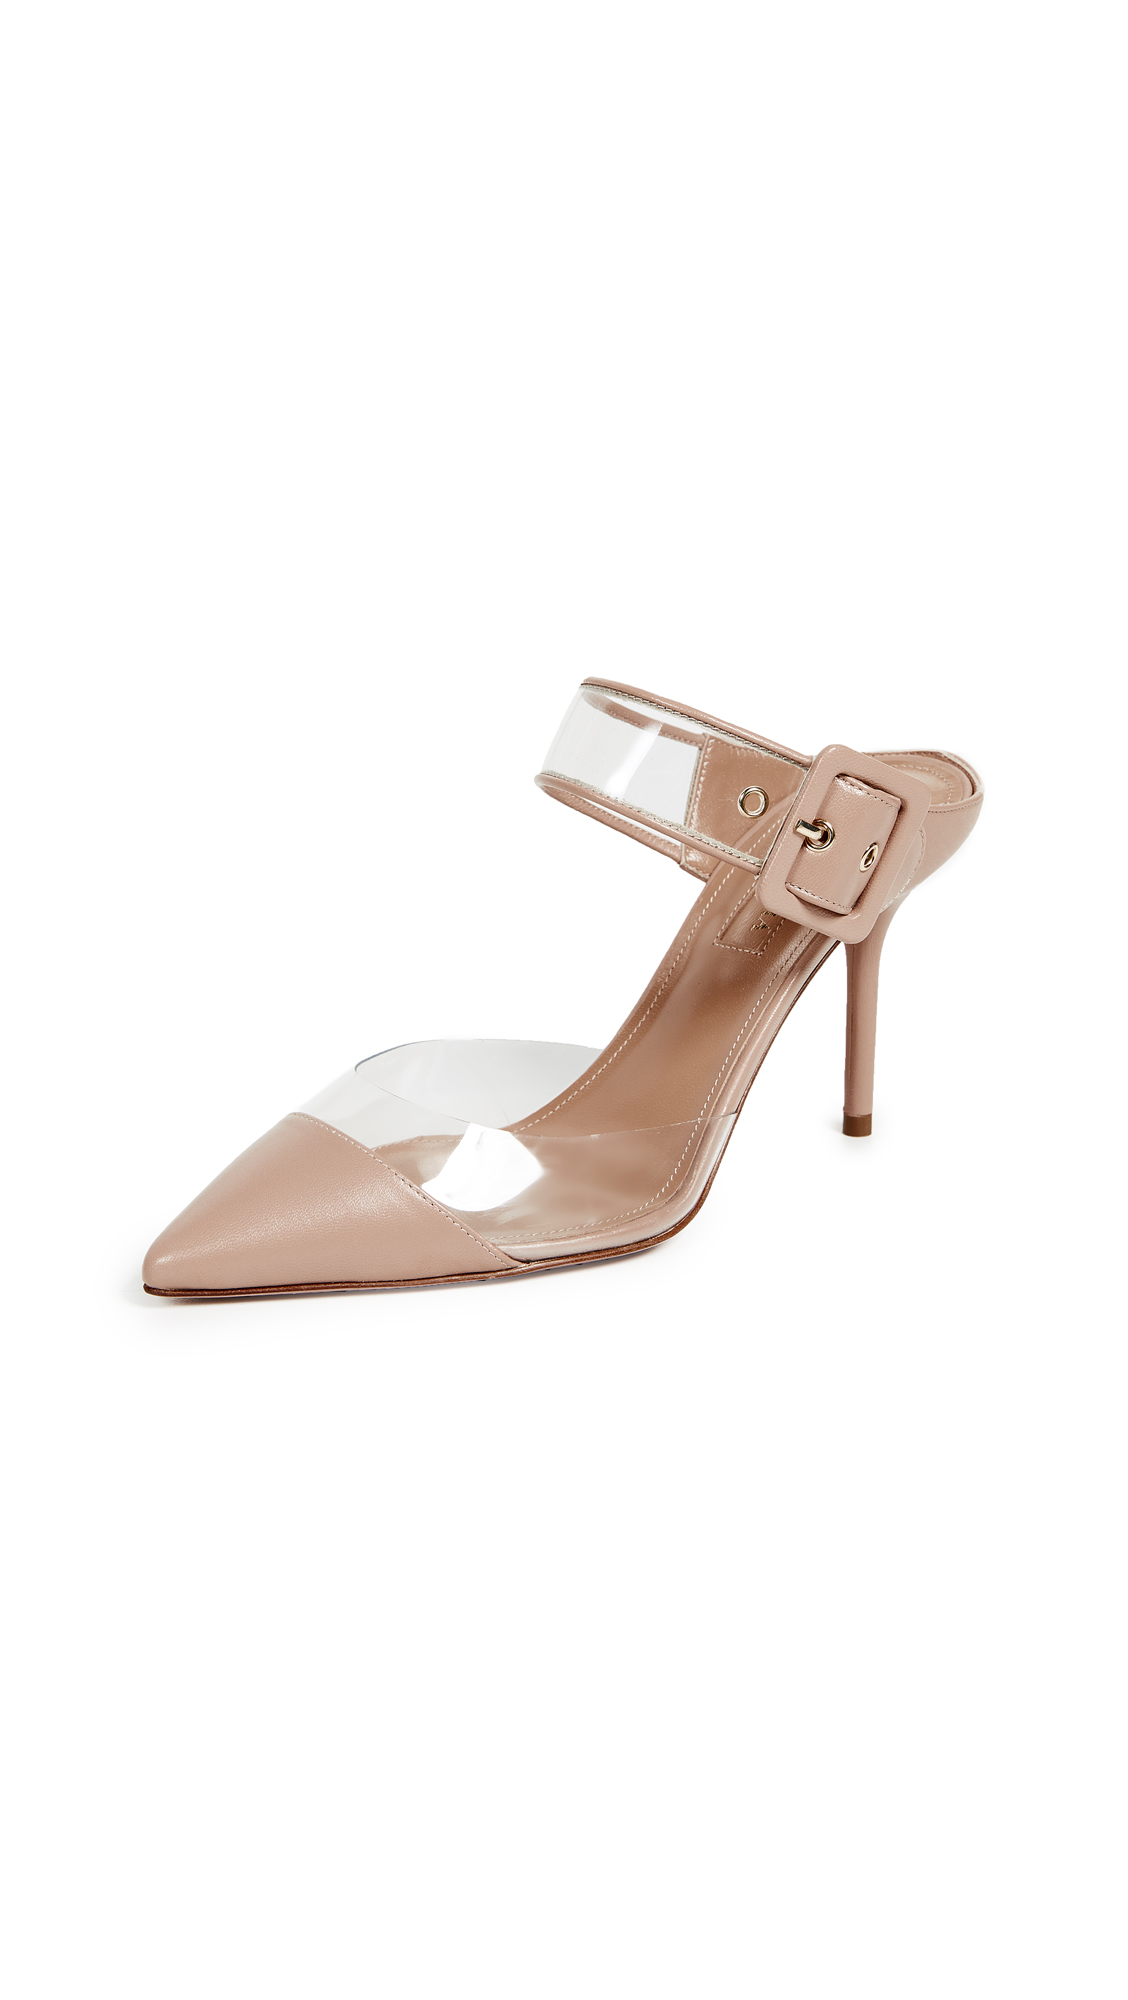 Aquazzura Optic 85mm Mules - Powder Pink